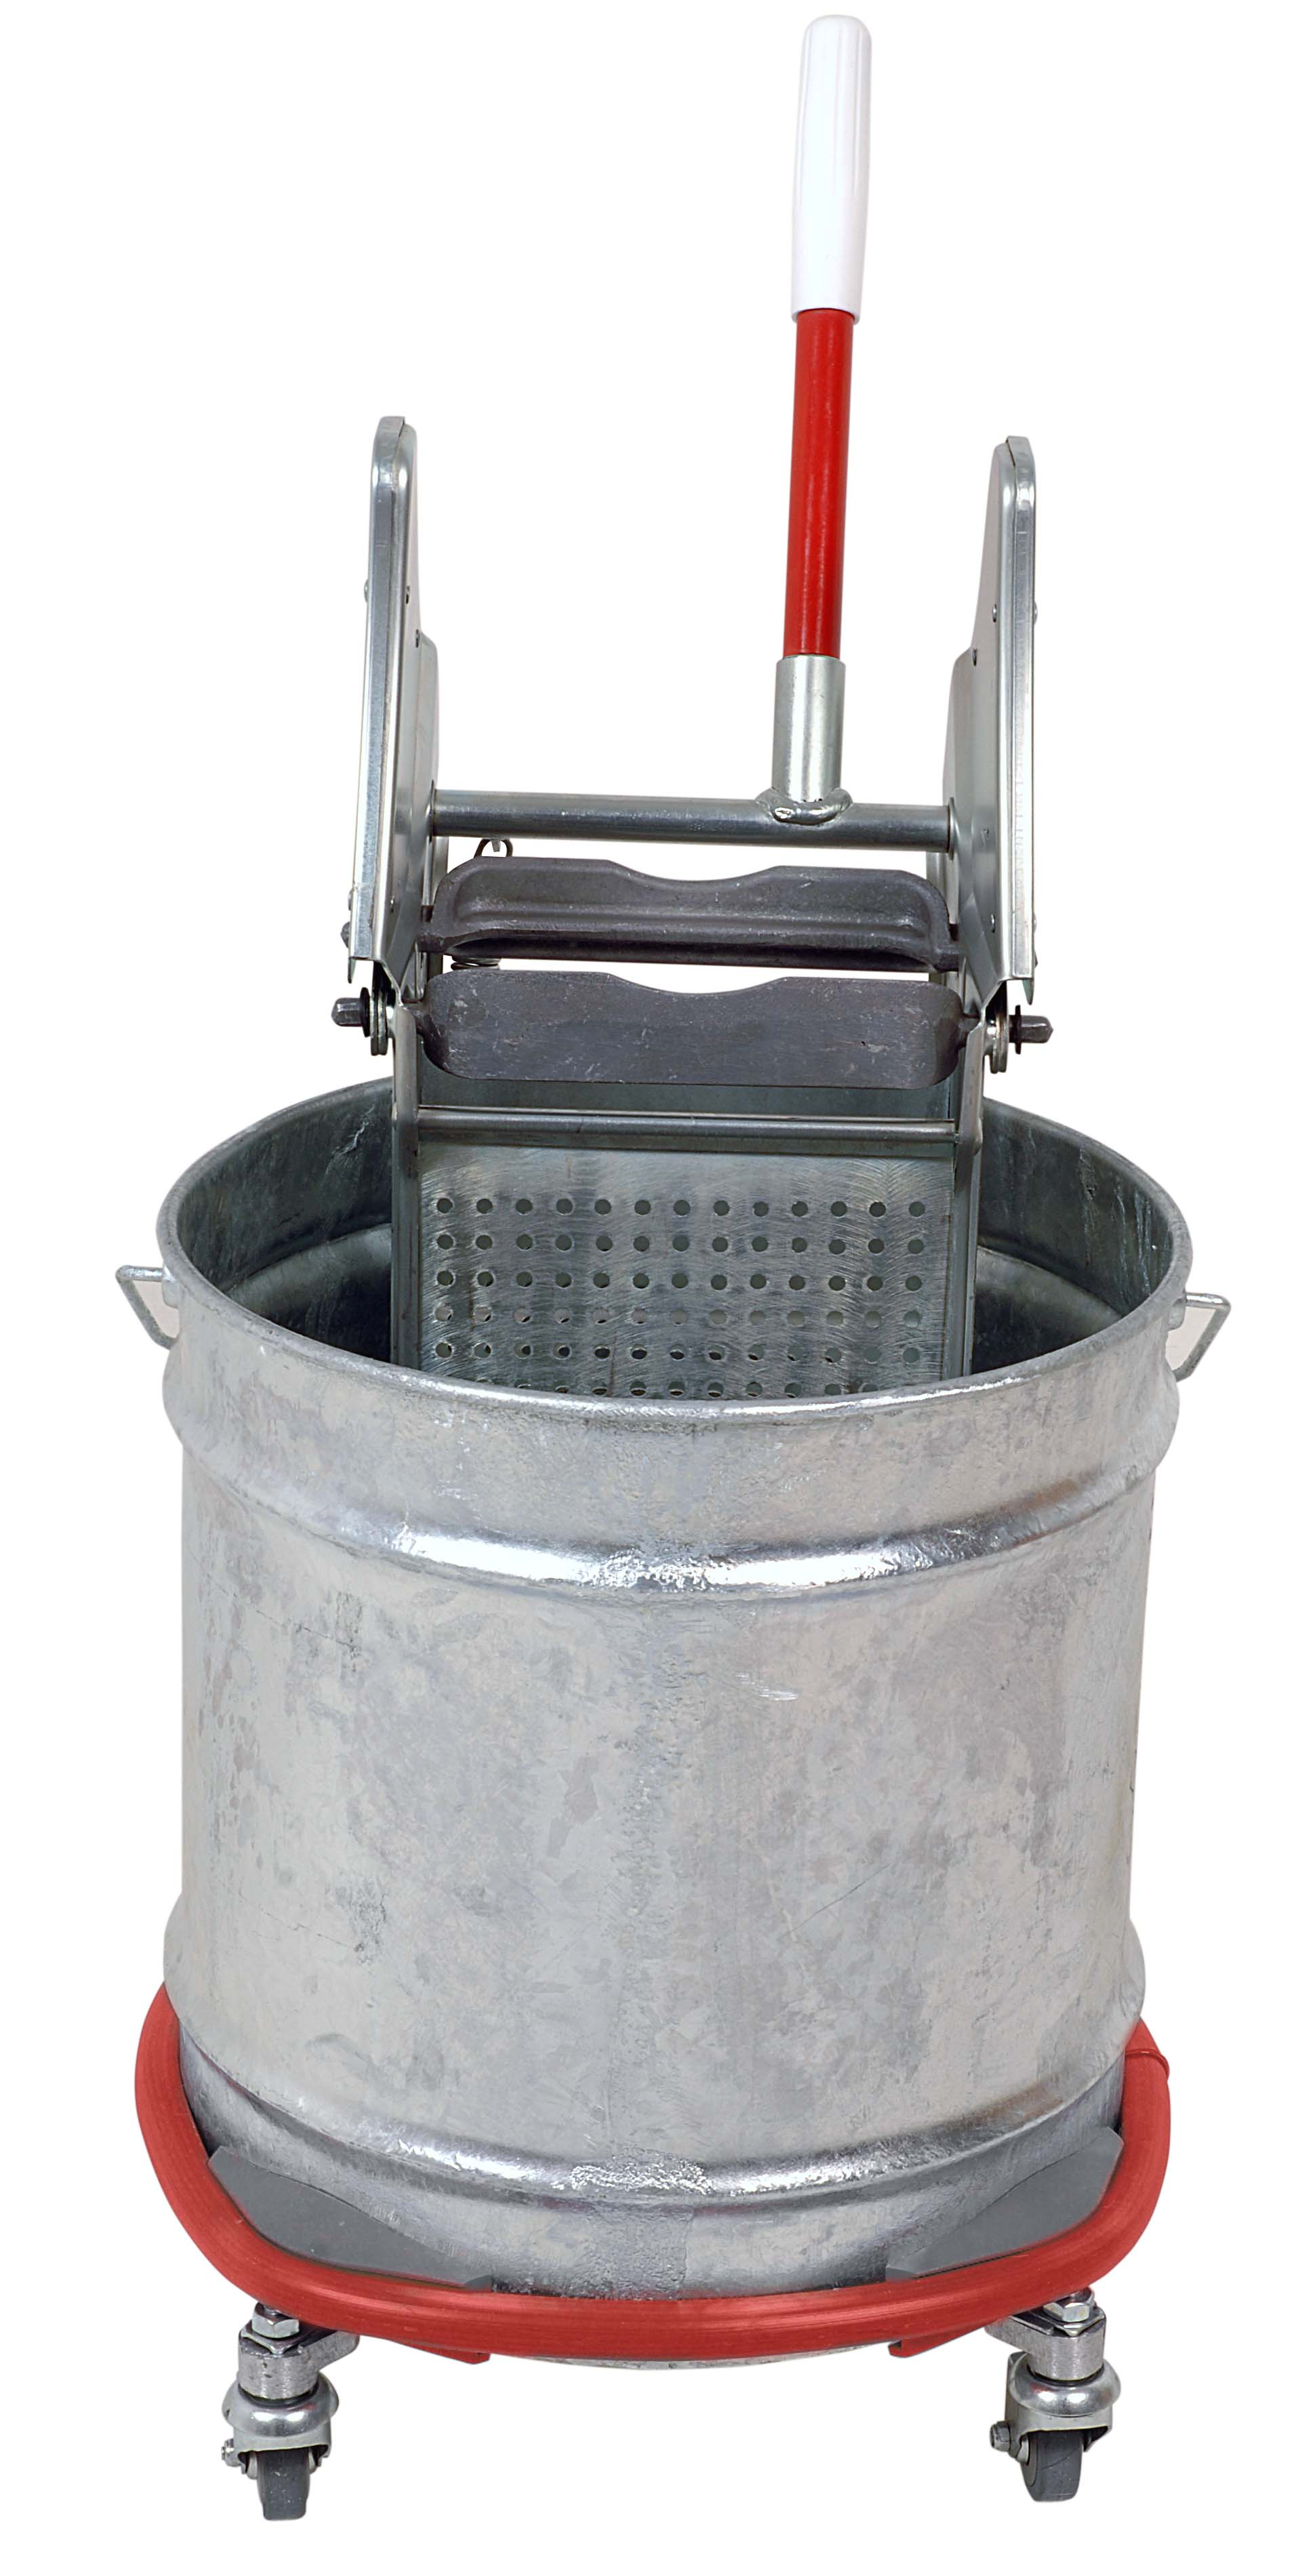 GEERPRESS BUCKET ONLY (NO WRINGER)